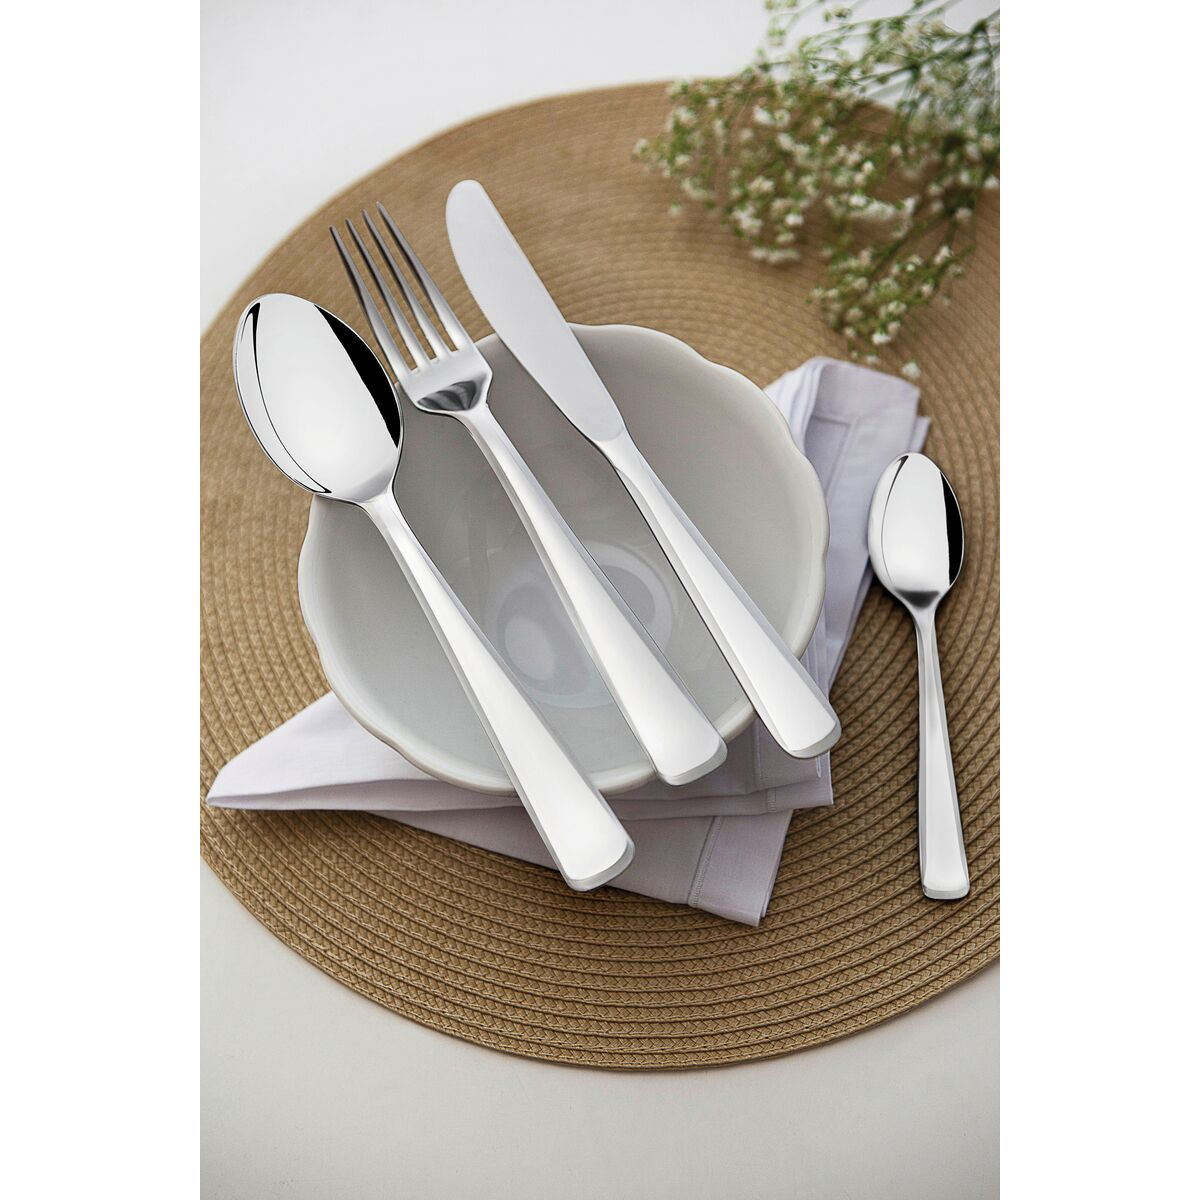 Tramontina - 72 pc. Stainless steel flatware set with table knife